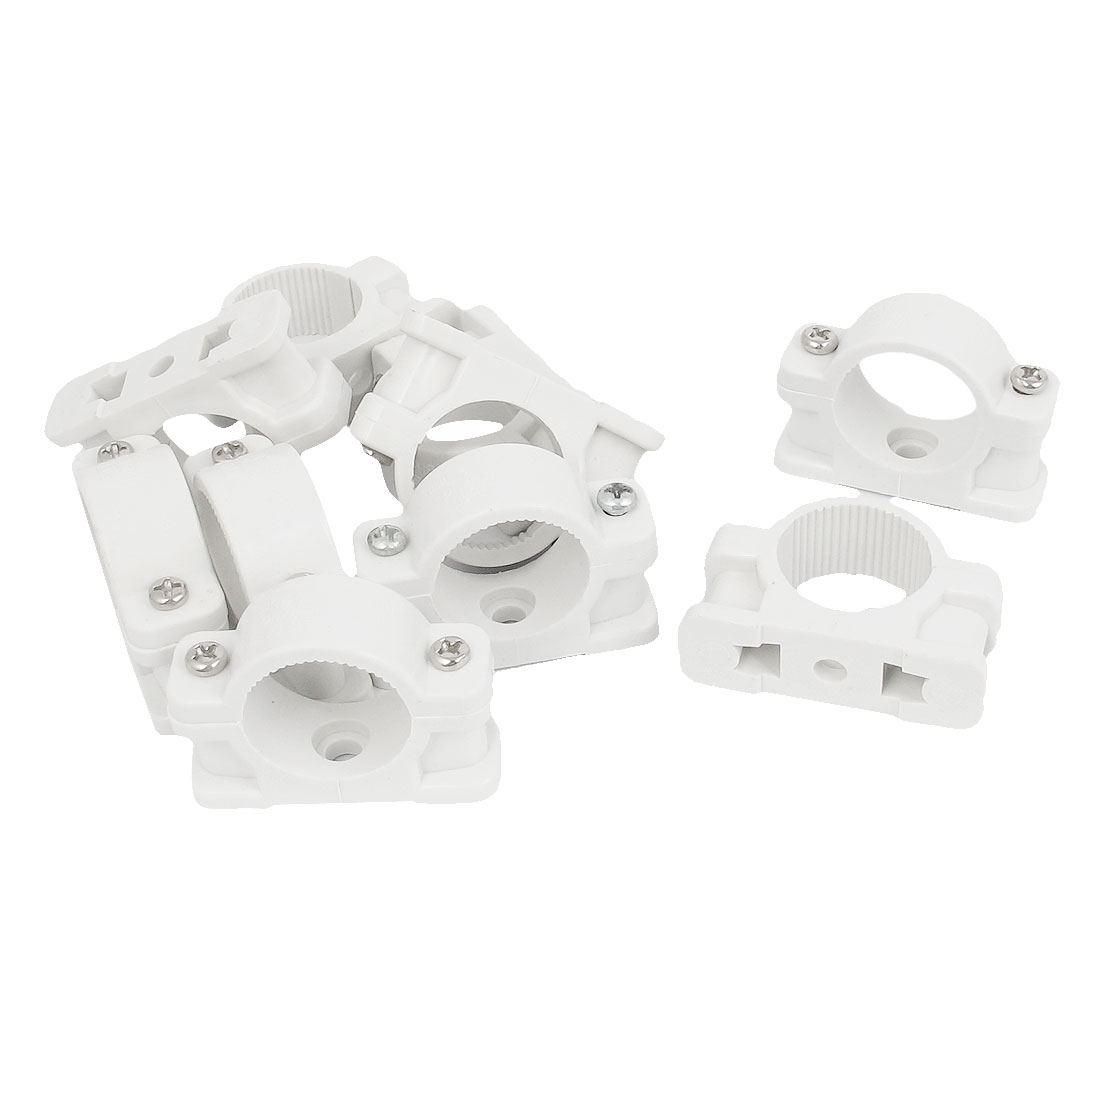 25mm Dia Wall Mounted Plastic Pipe Clip Clamp Fastener 10pcs